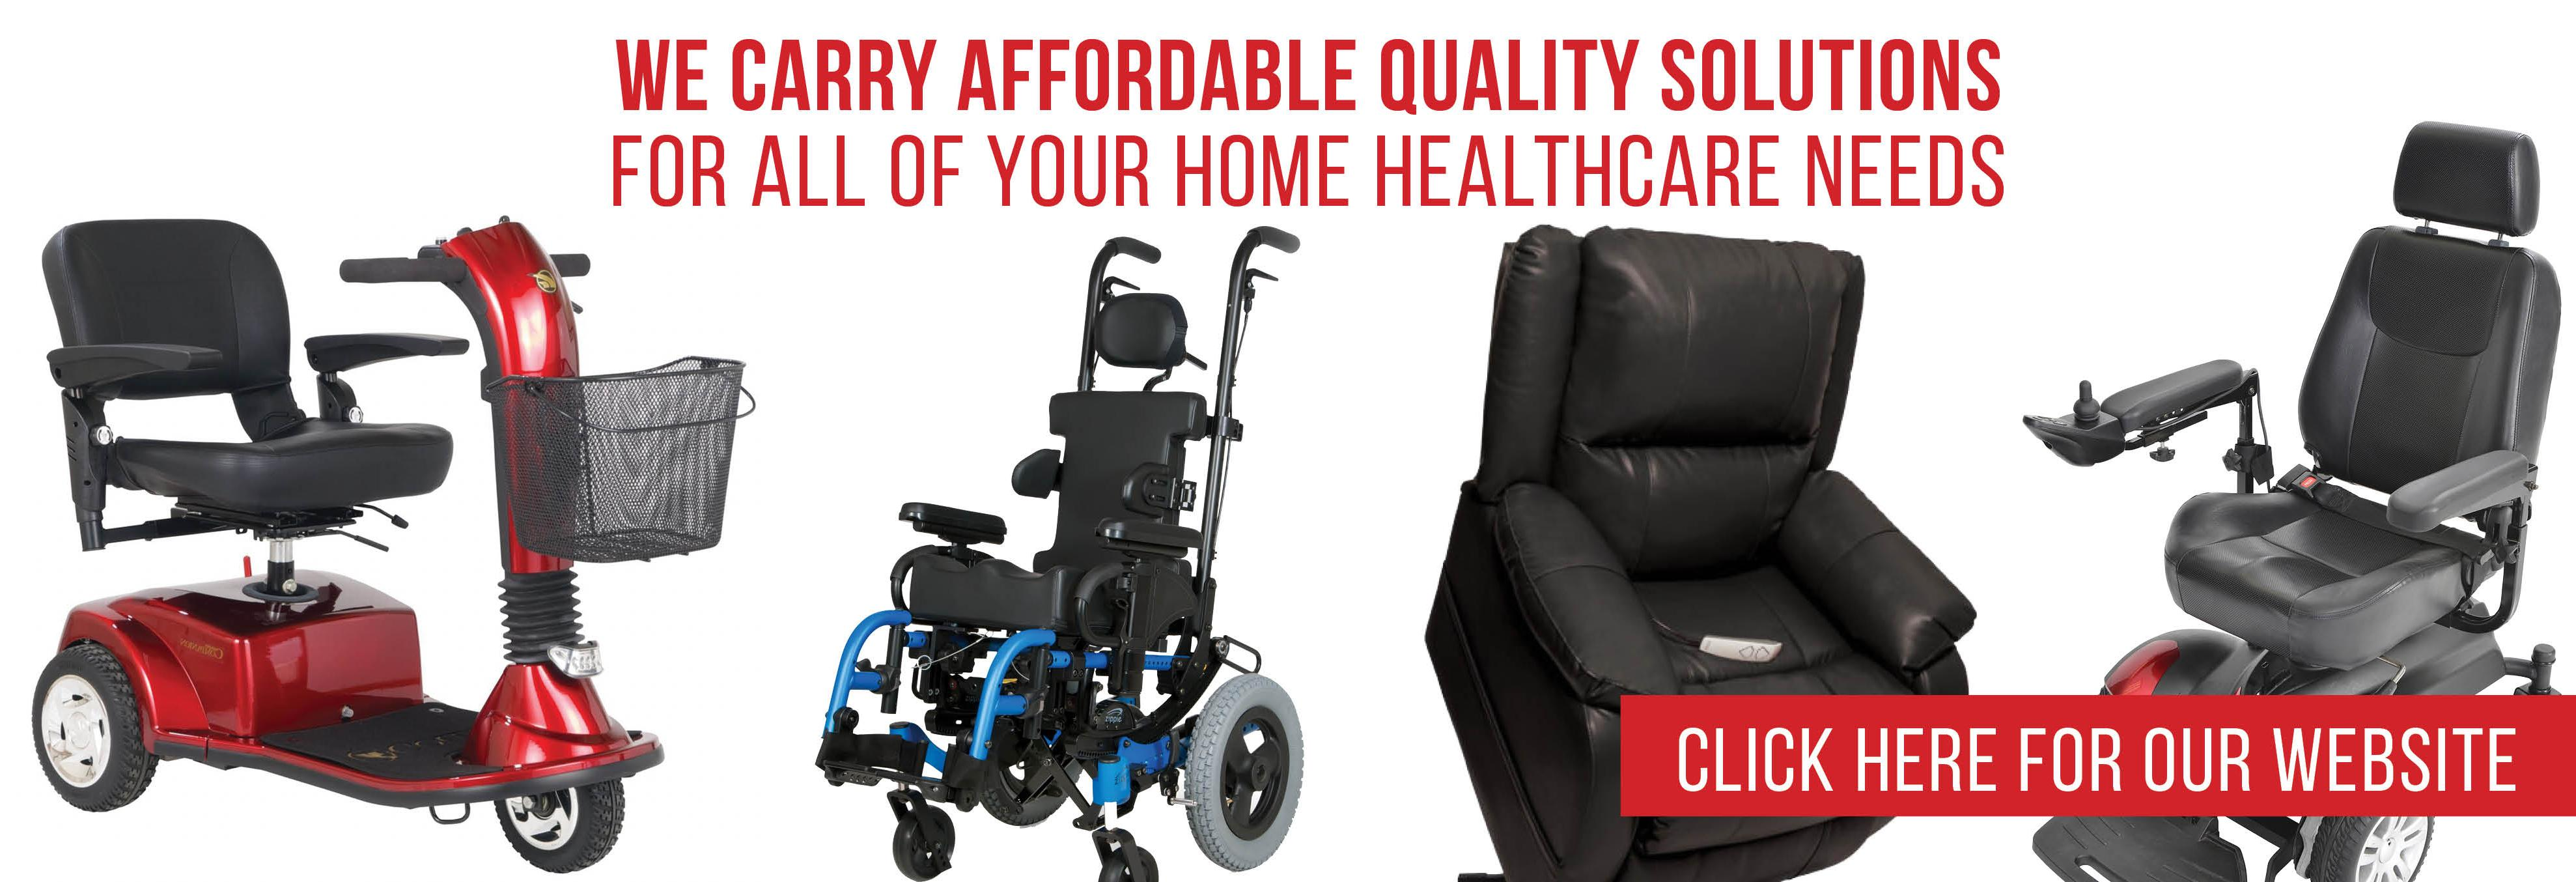 Family Care Home Medical Equipment, Wheelchairs, Chair Lifts, Hospital Beds, Pharmacy, Scooters